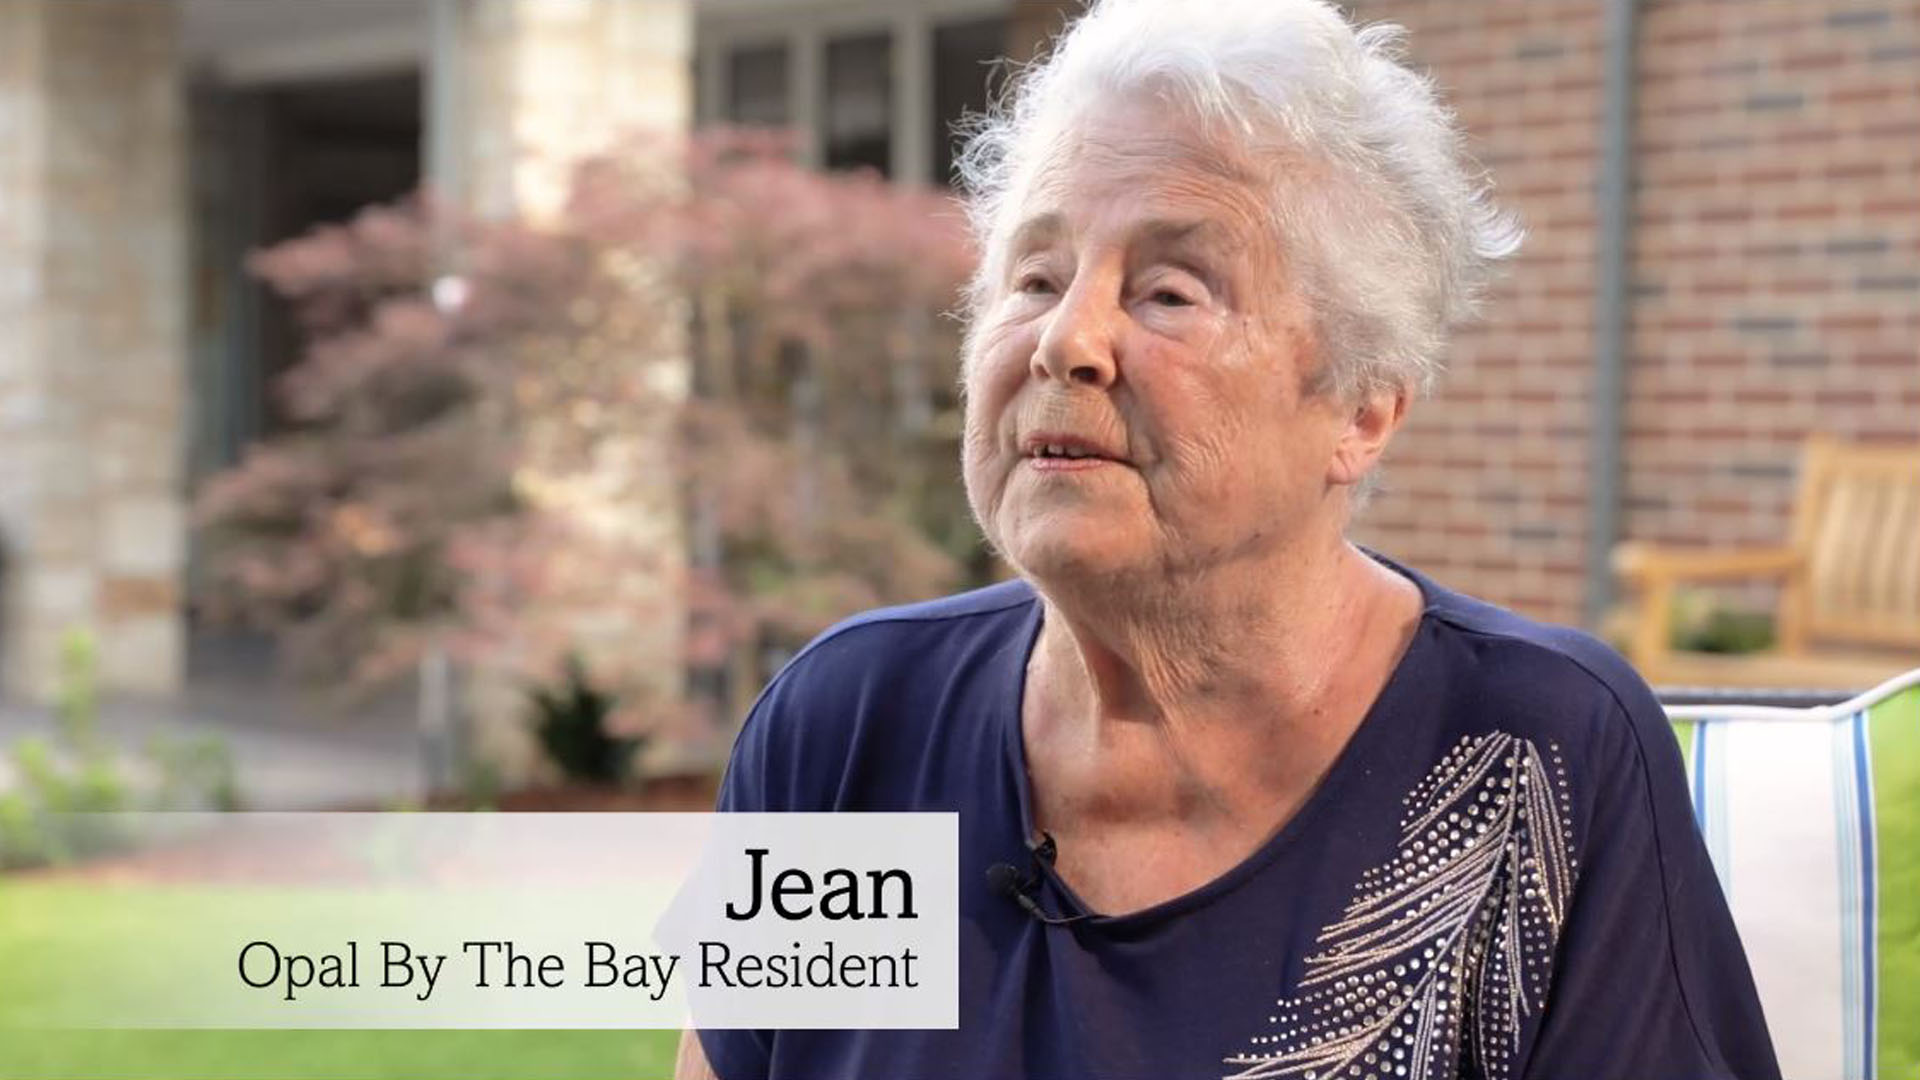 Jean Opal By the Bay